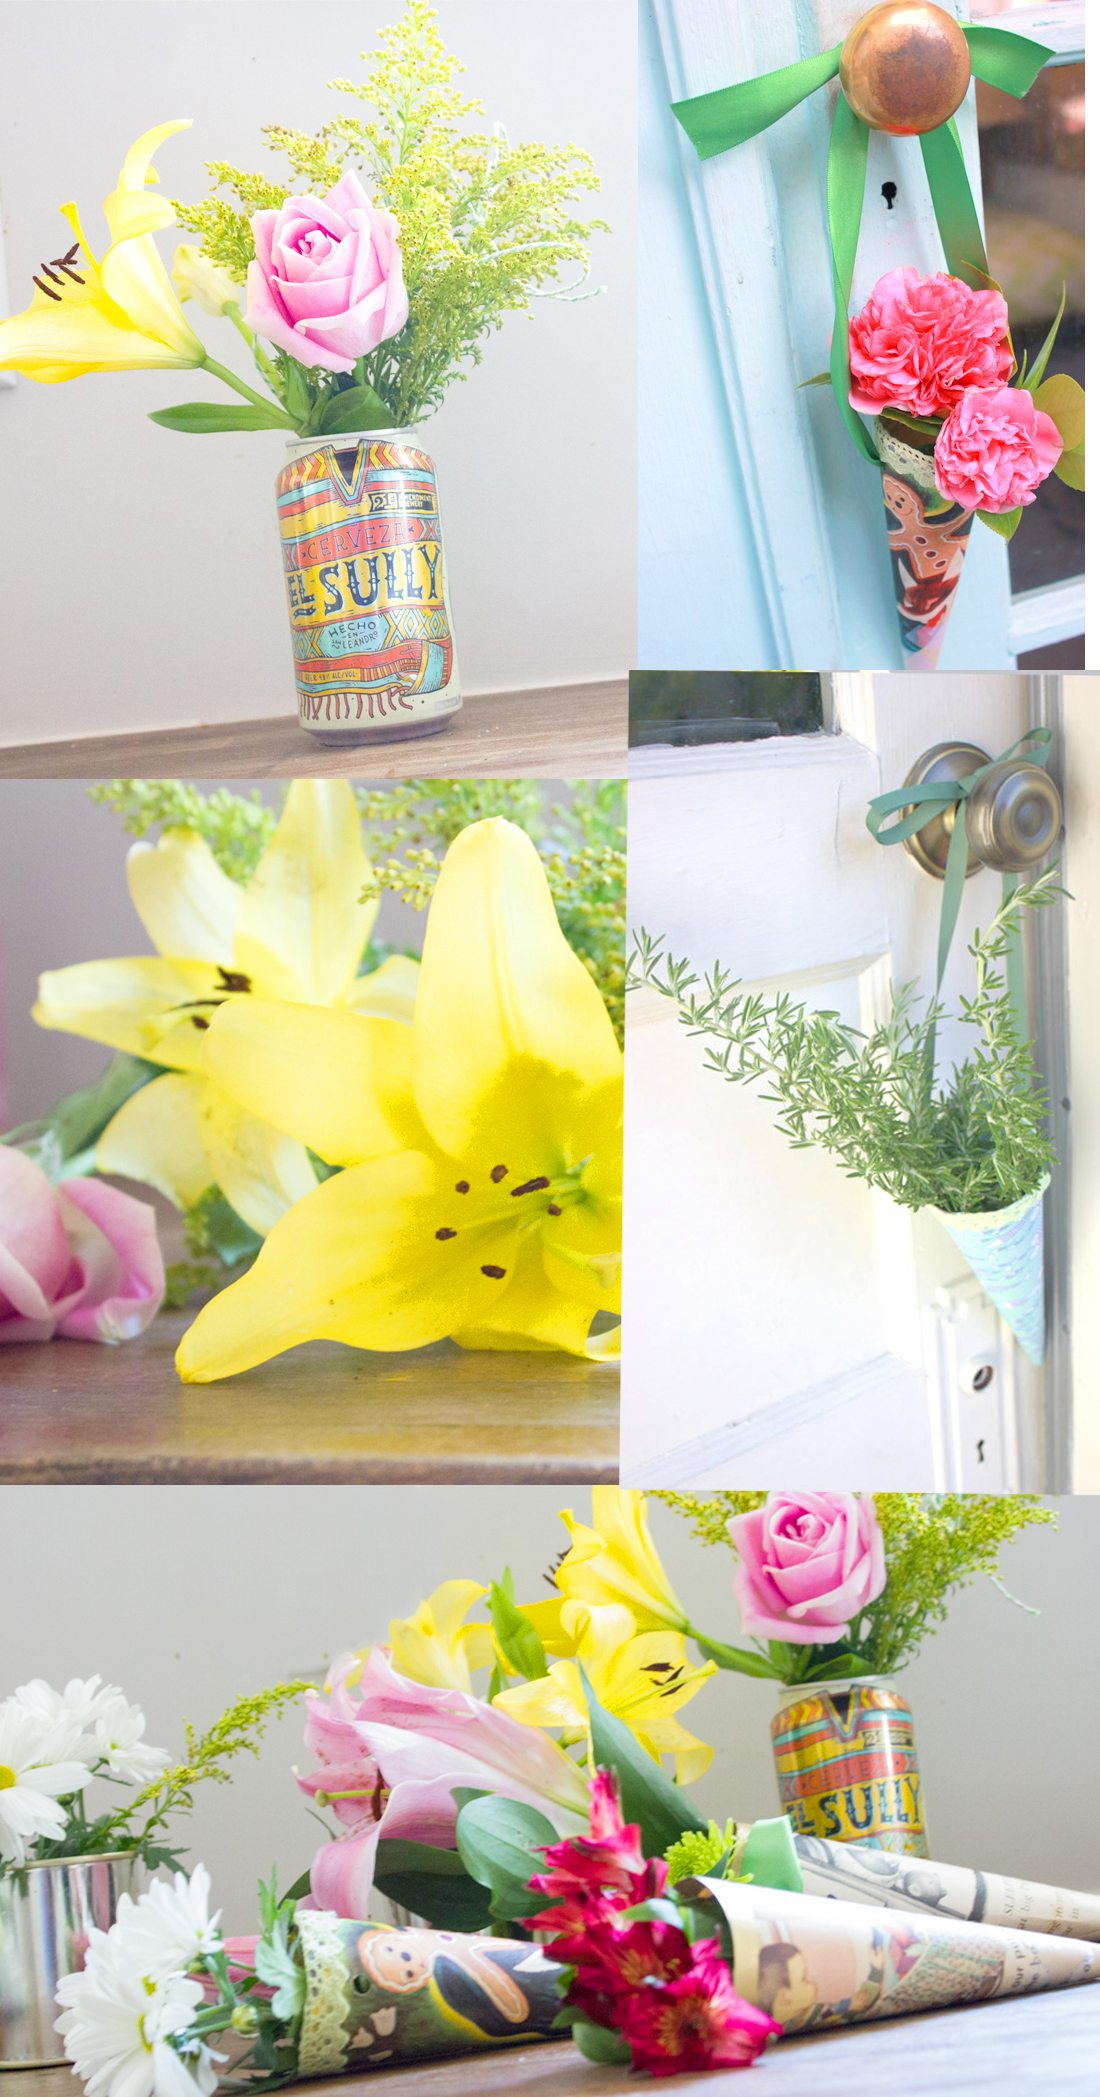 May Day Flower Baskets Anyone Can Make For Their Friends Or